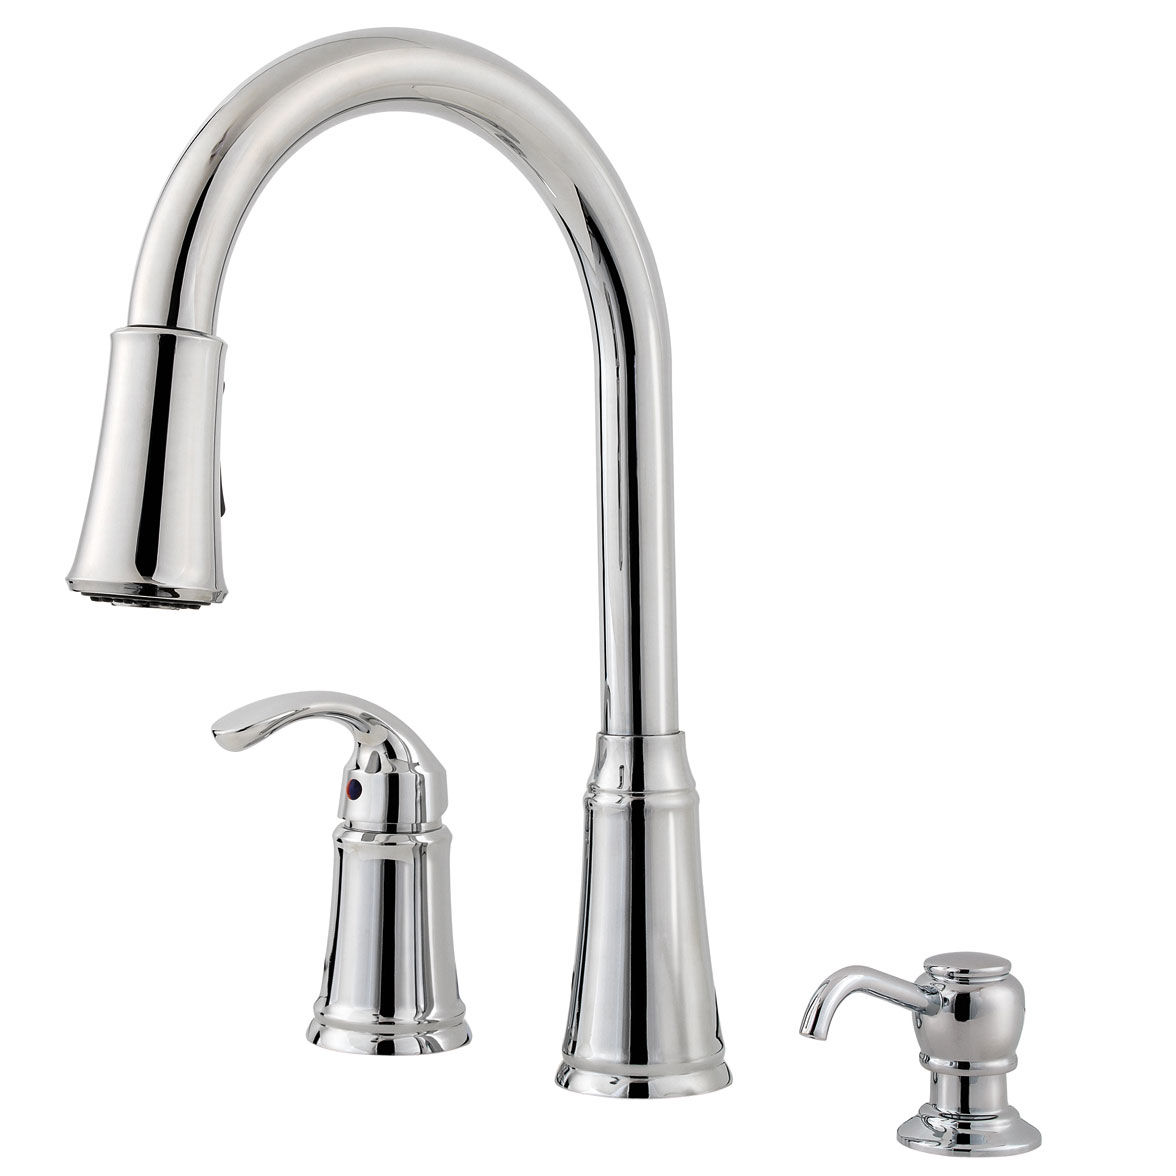 Pfister F WKP 650C Polished Chrome Classic Pullout Spray Professional  Kitchen Faucet With Soap Dispenser   Faucet.com